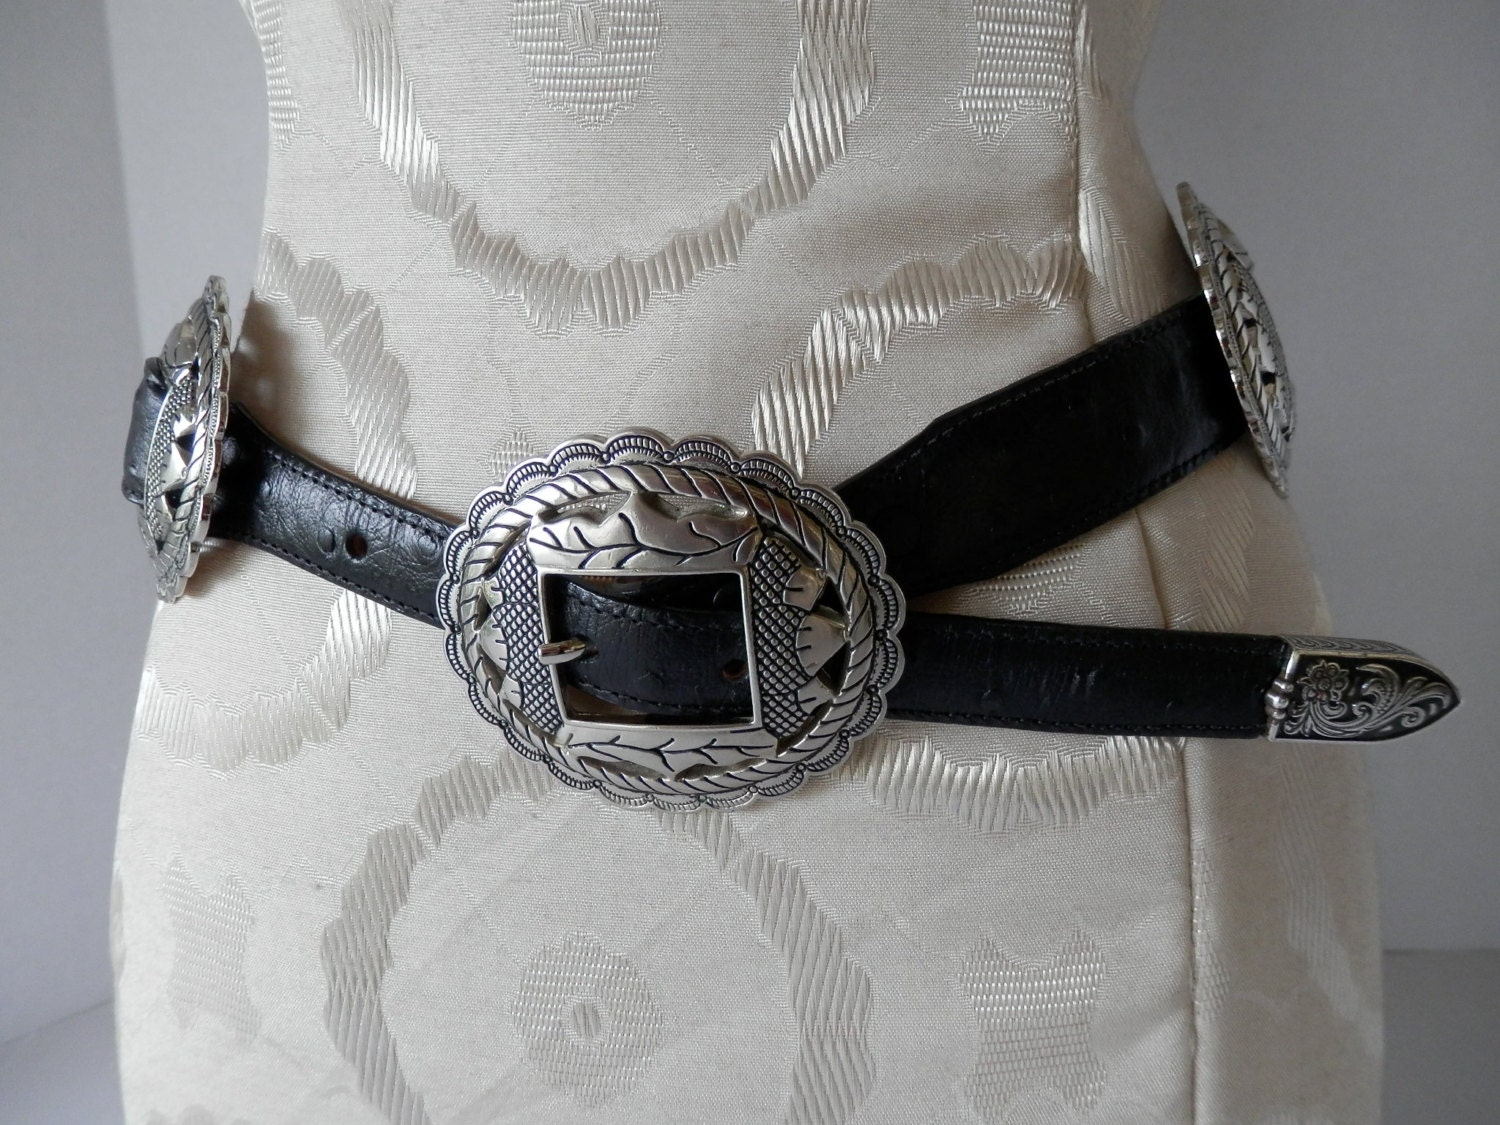 Acorn Concho Belt Black Ostrich Embossed Leather Size 31